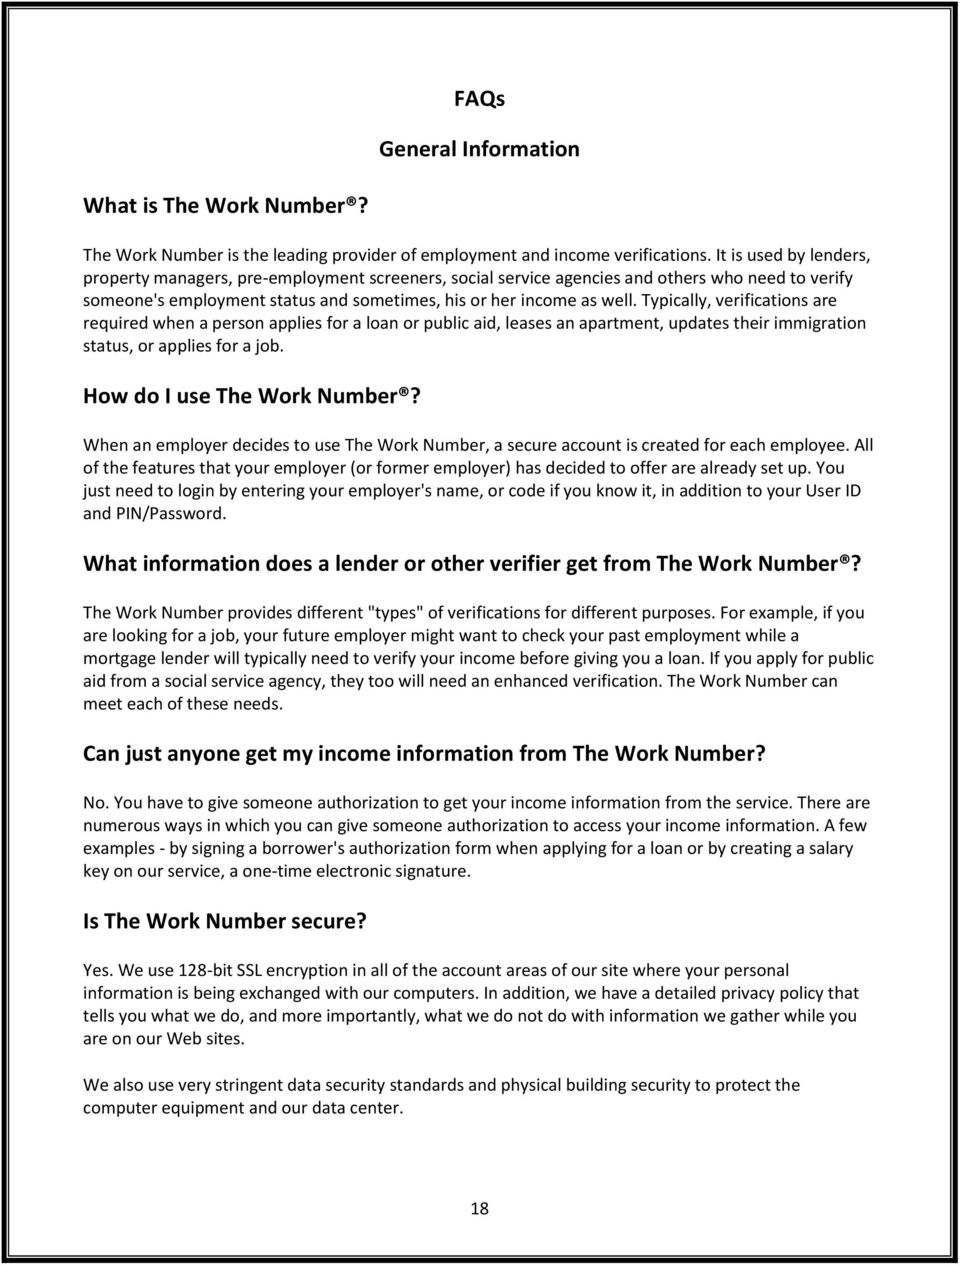 TABLE OF CONTENTS GENERAL INFORMATION/WHY WE USE THE WORK